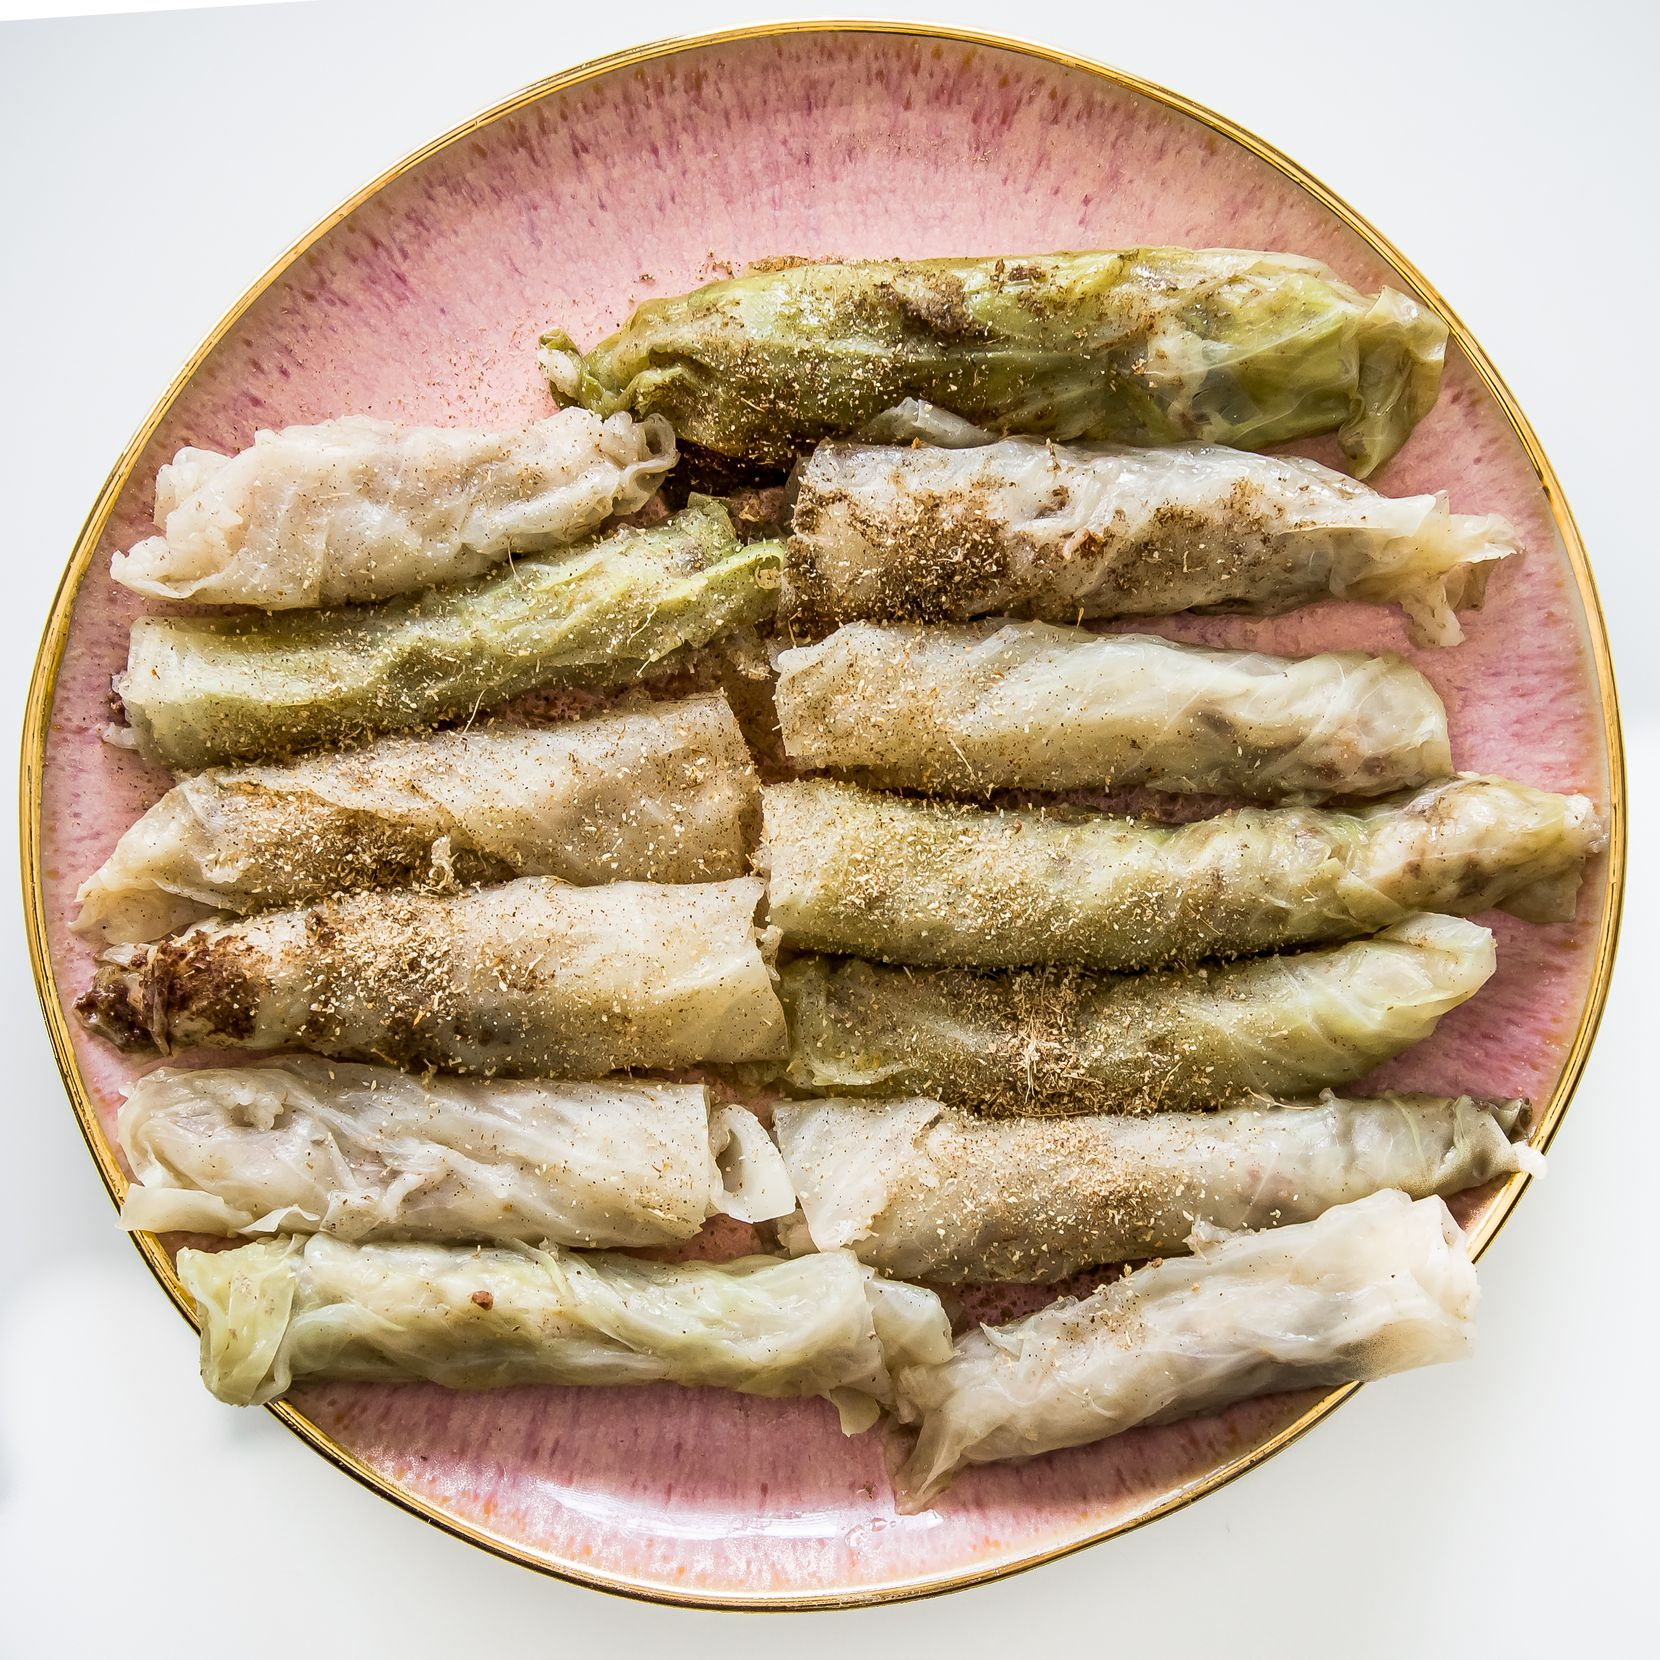 Malfouf (Cabbage Rolls) are a common dish in Jordan.